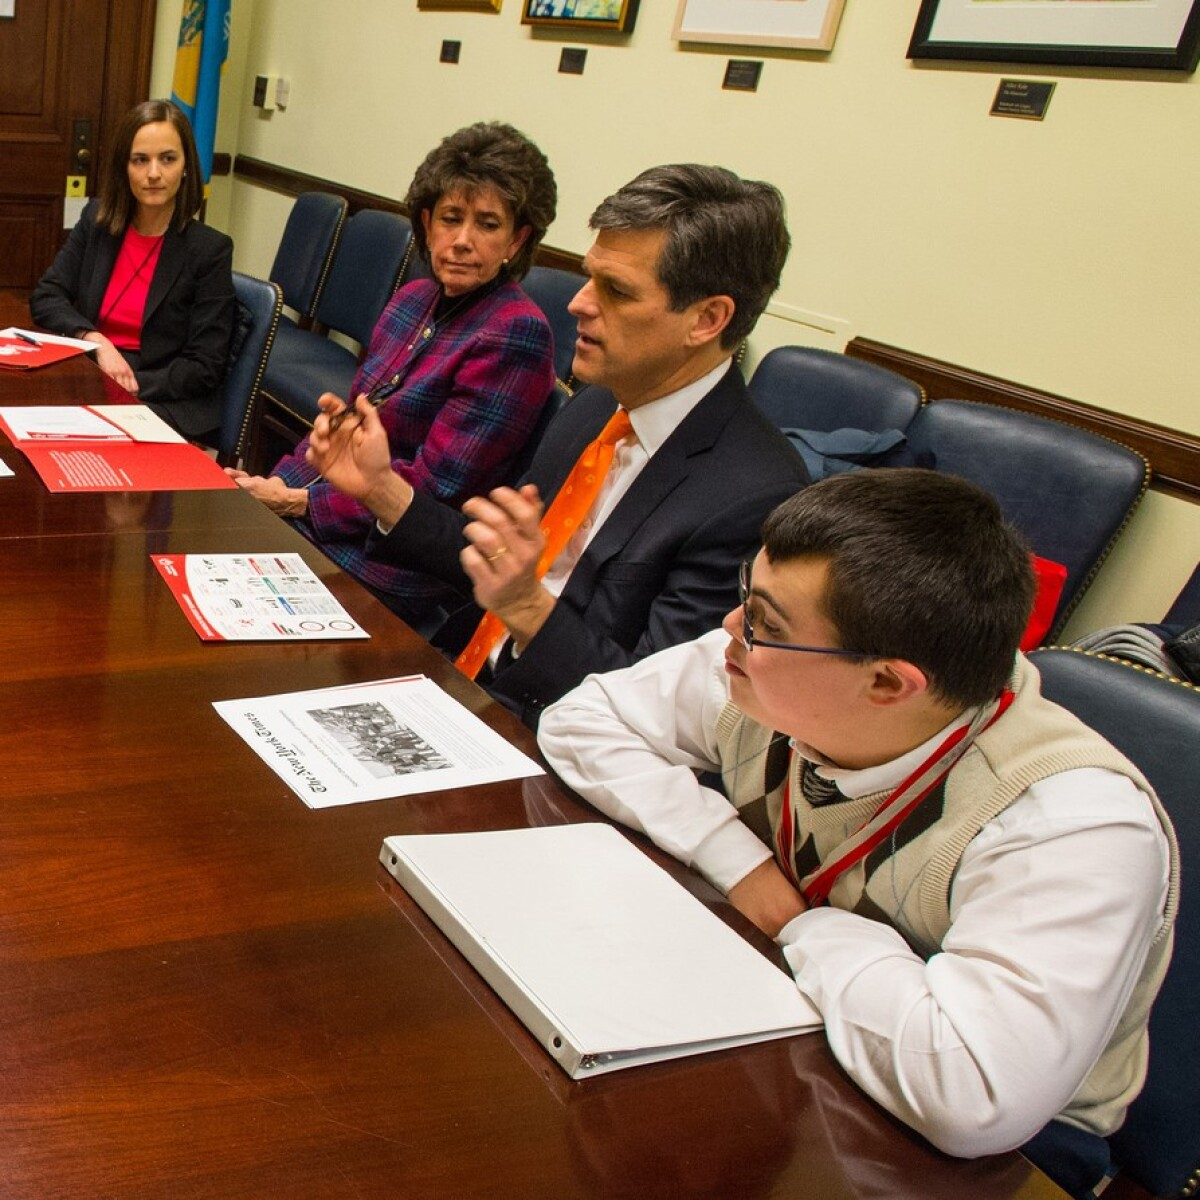 Tim Shriver and a Special Olympics Athlete Meet with Delaware Senator Chris Coons' Staff at the U.S. Capitol